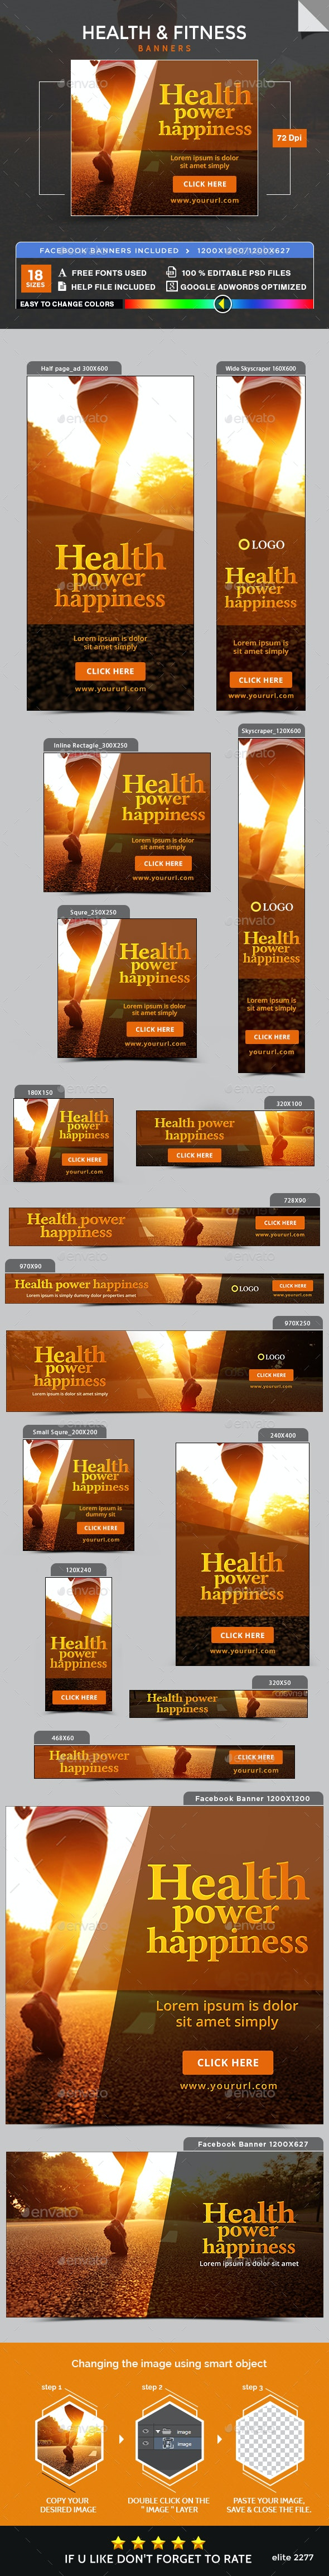 Health & Fitness Banners - Banners & Ads Web Elements